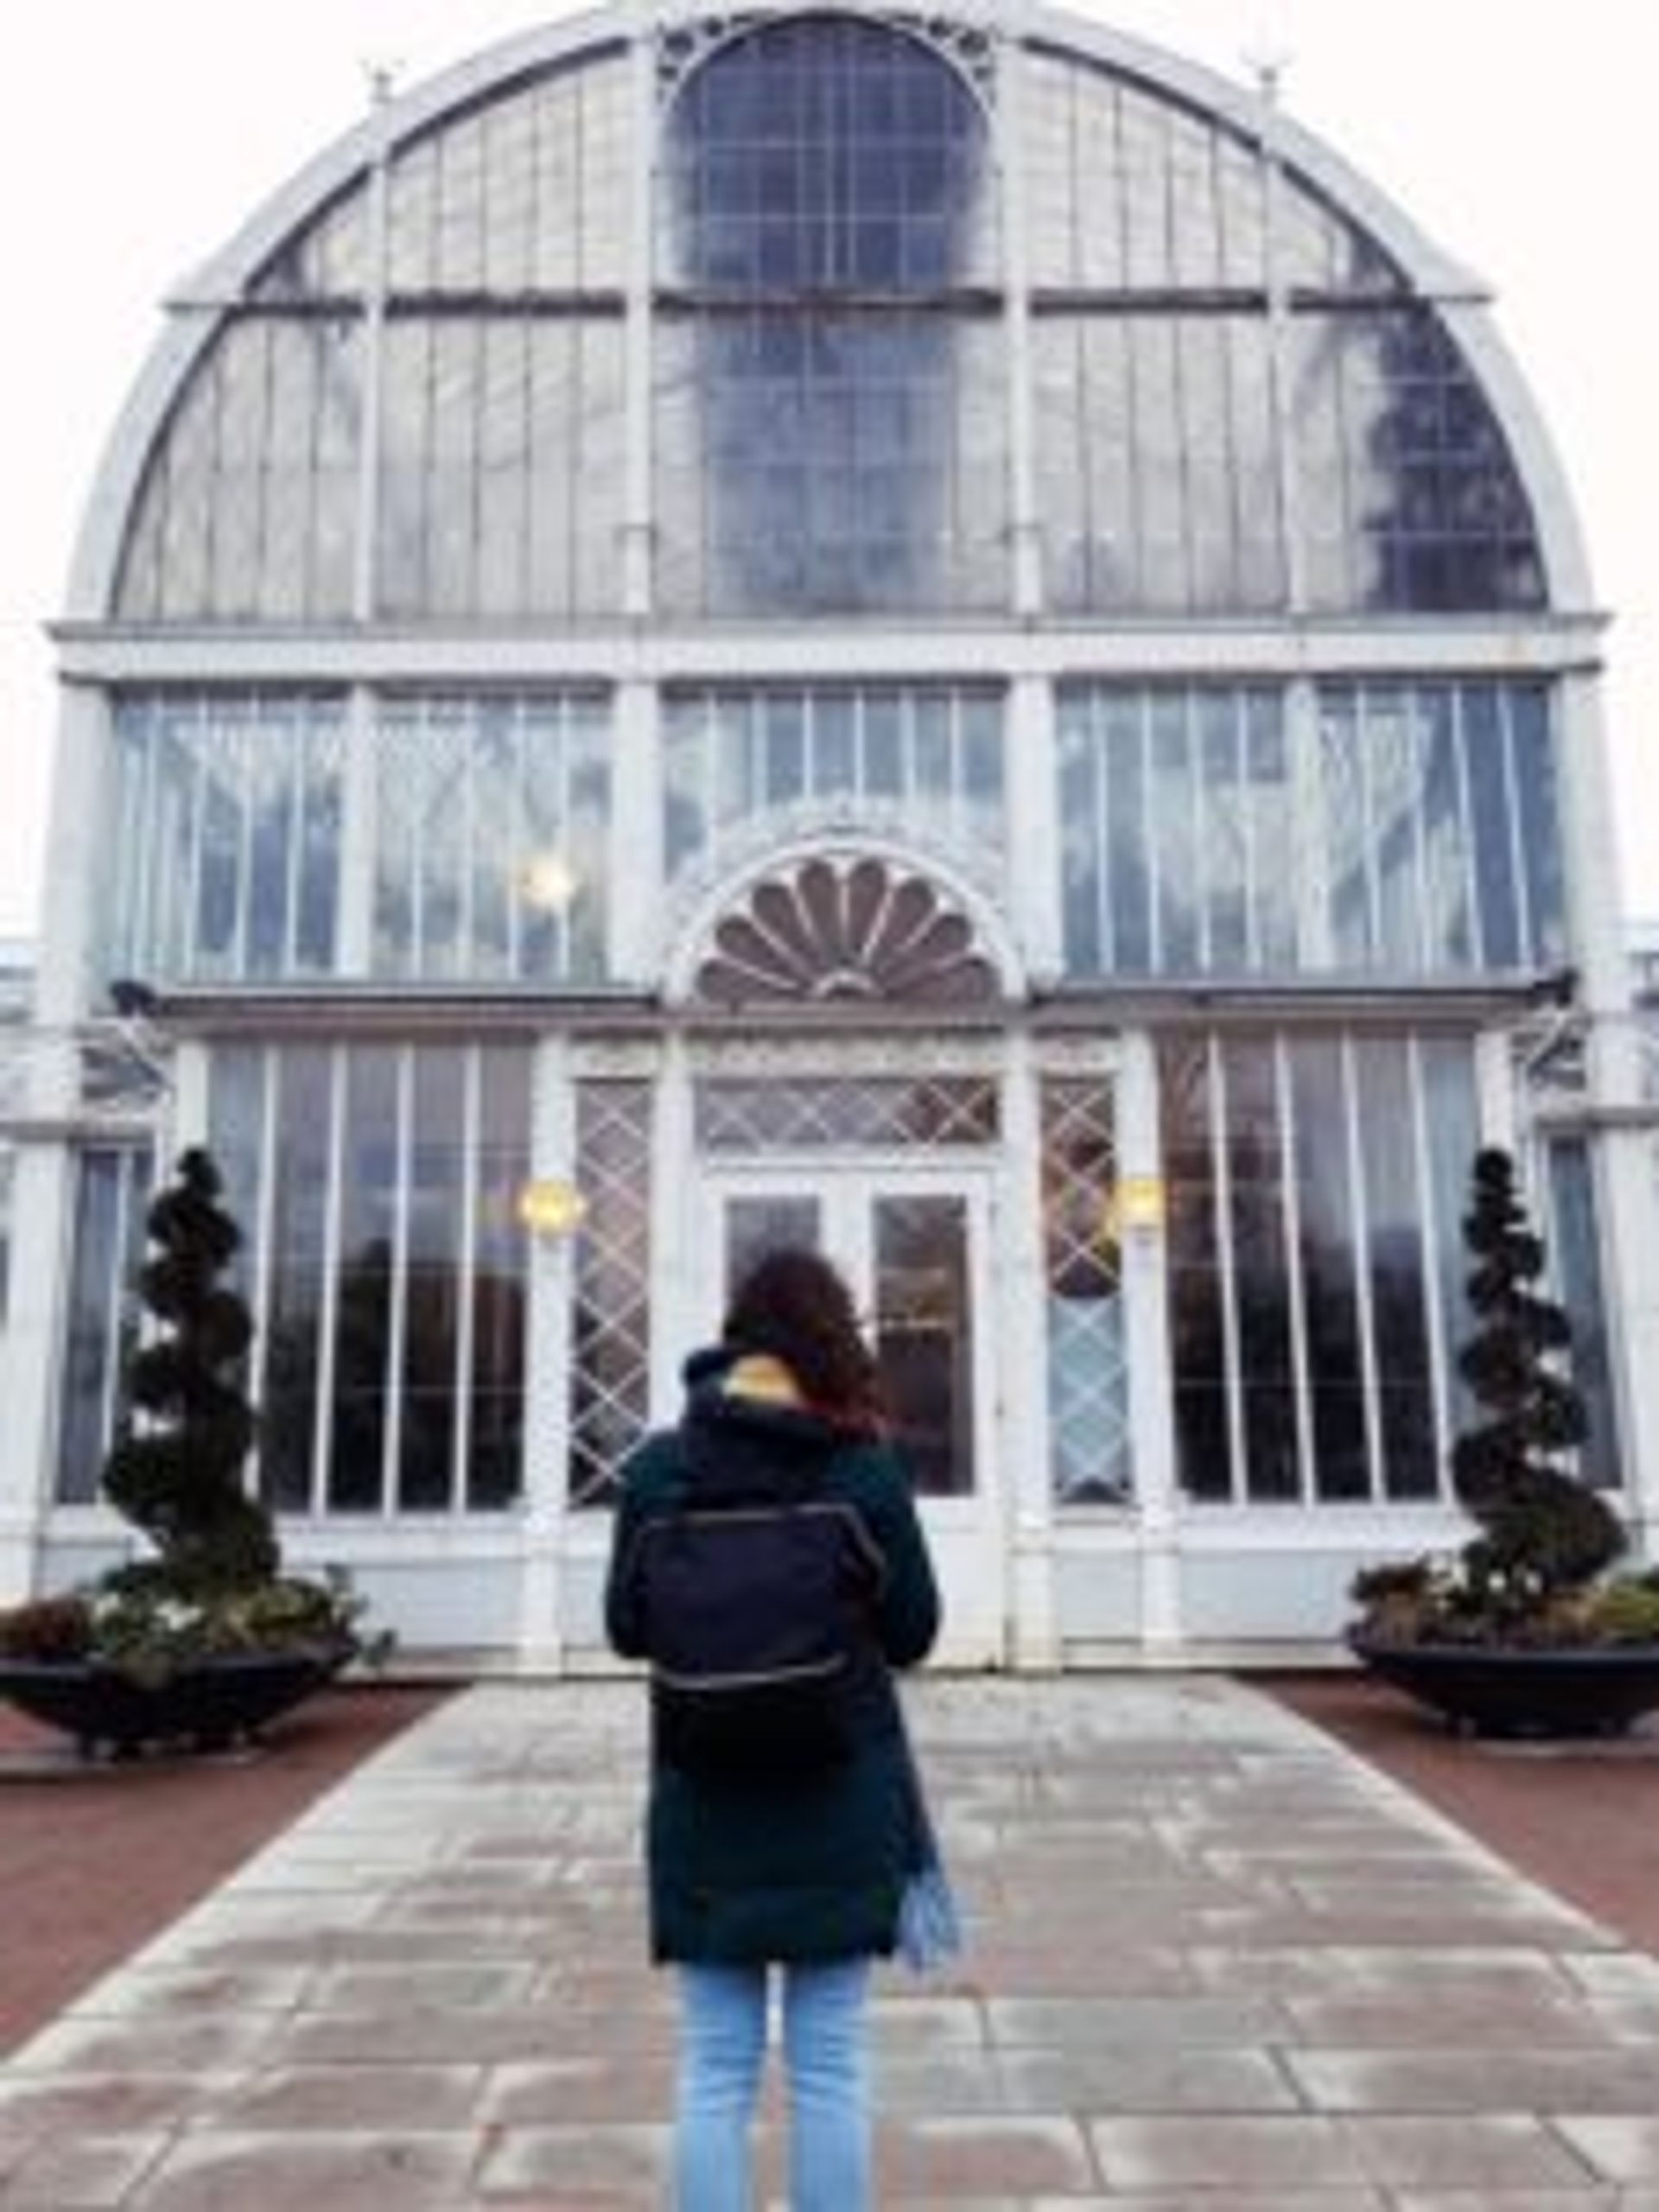 A person standing in front of the large, white greenhouse.